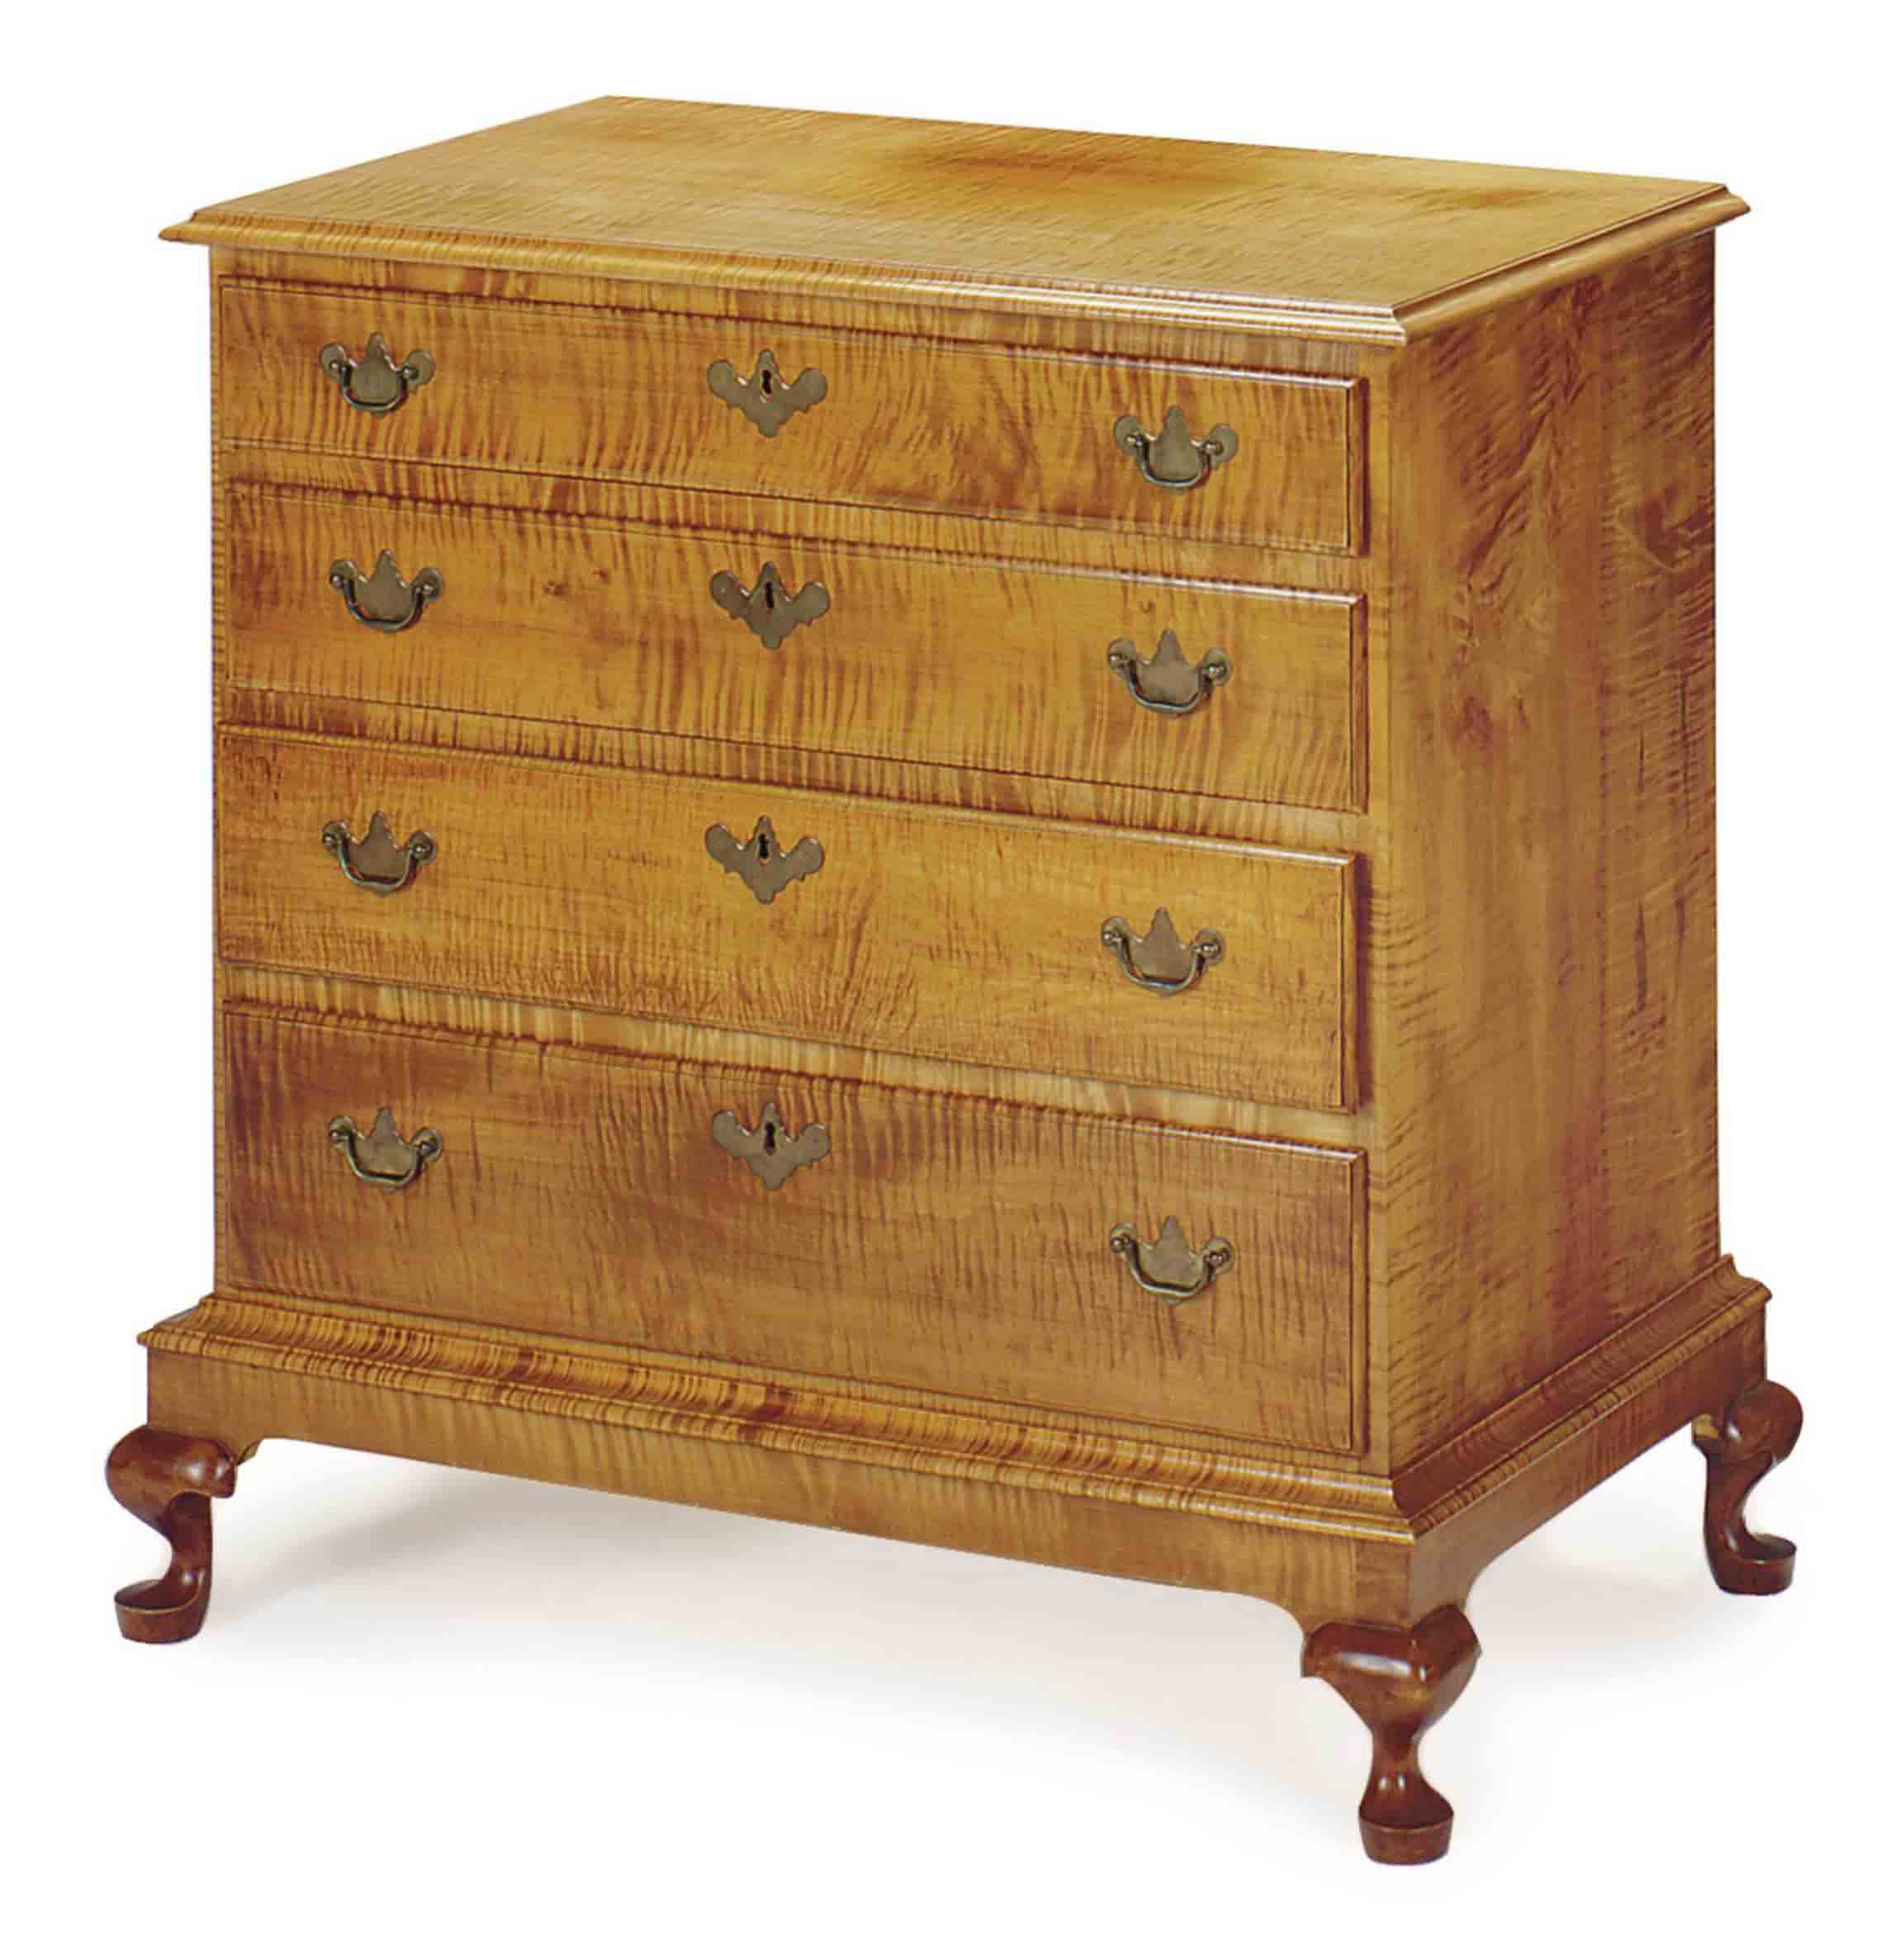 AN AMERICAN FIGURED MAPLE CHEST OF DRAWERS,